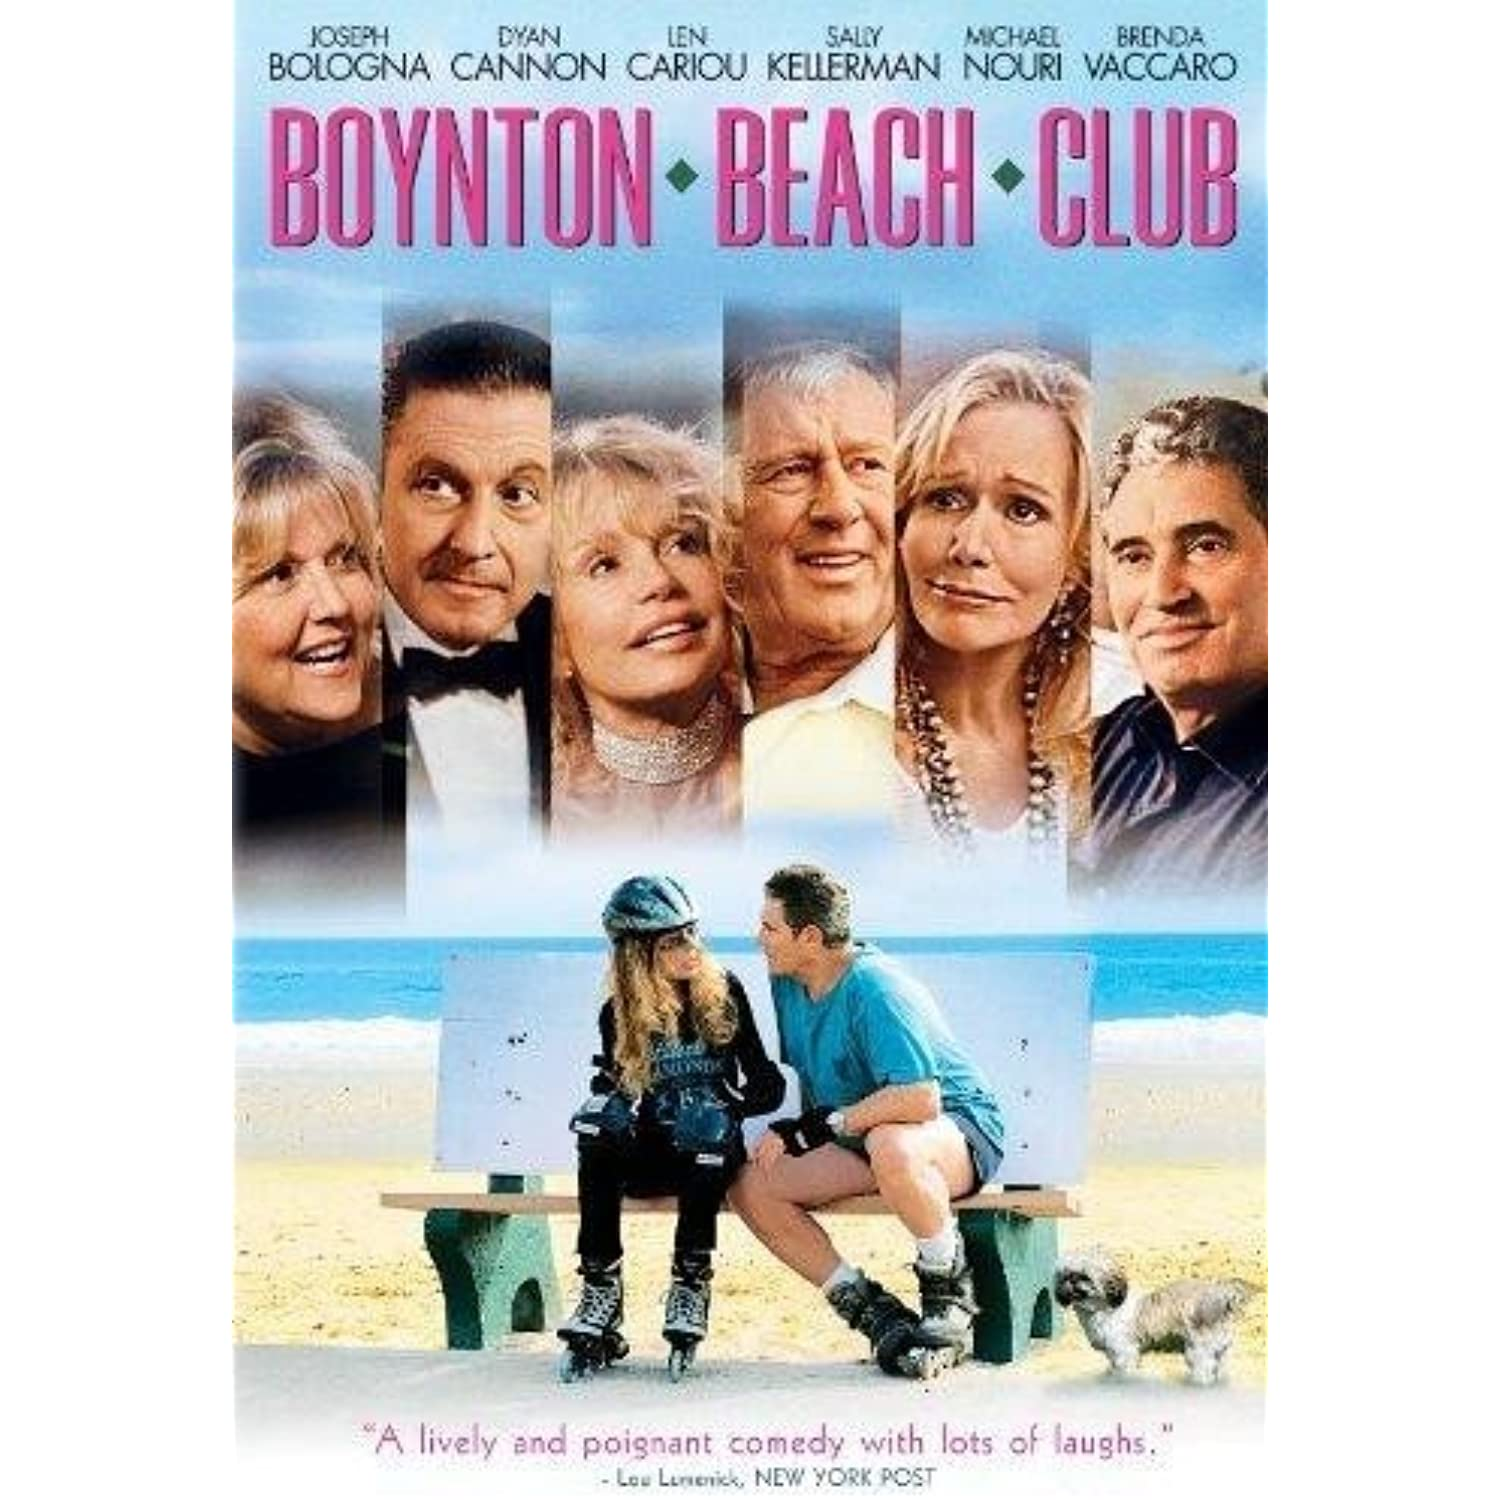 Boynton Beach Club